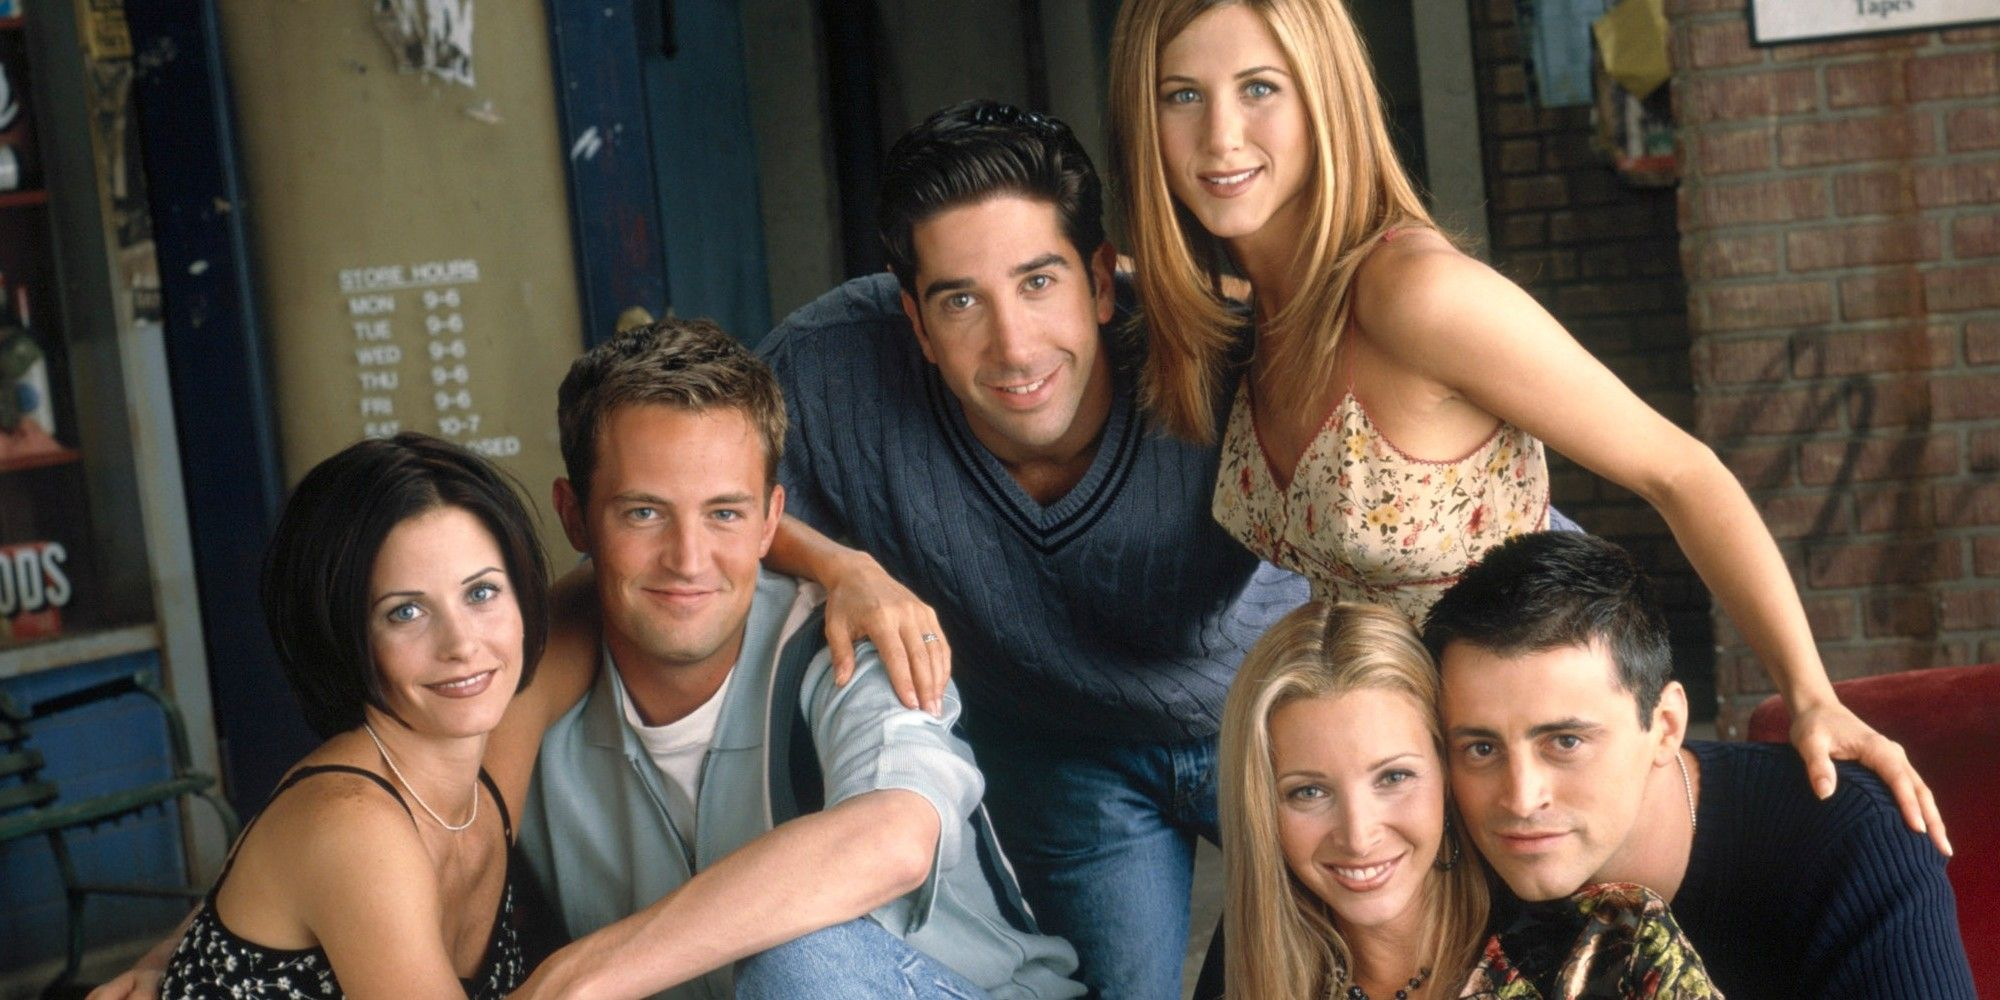 Friends Theory: The Characters Represent the Seven Deadly Sins